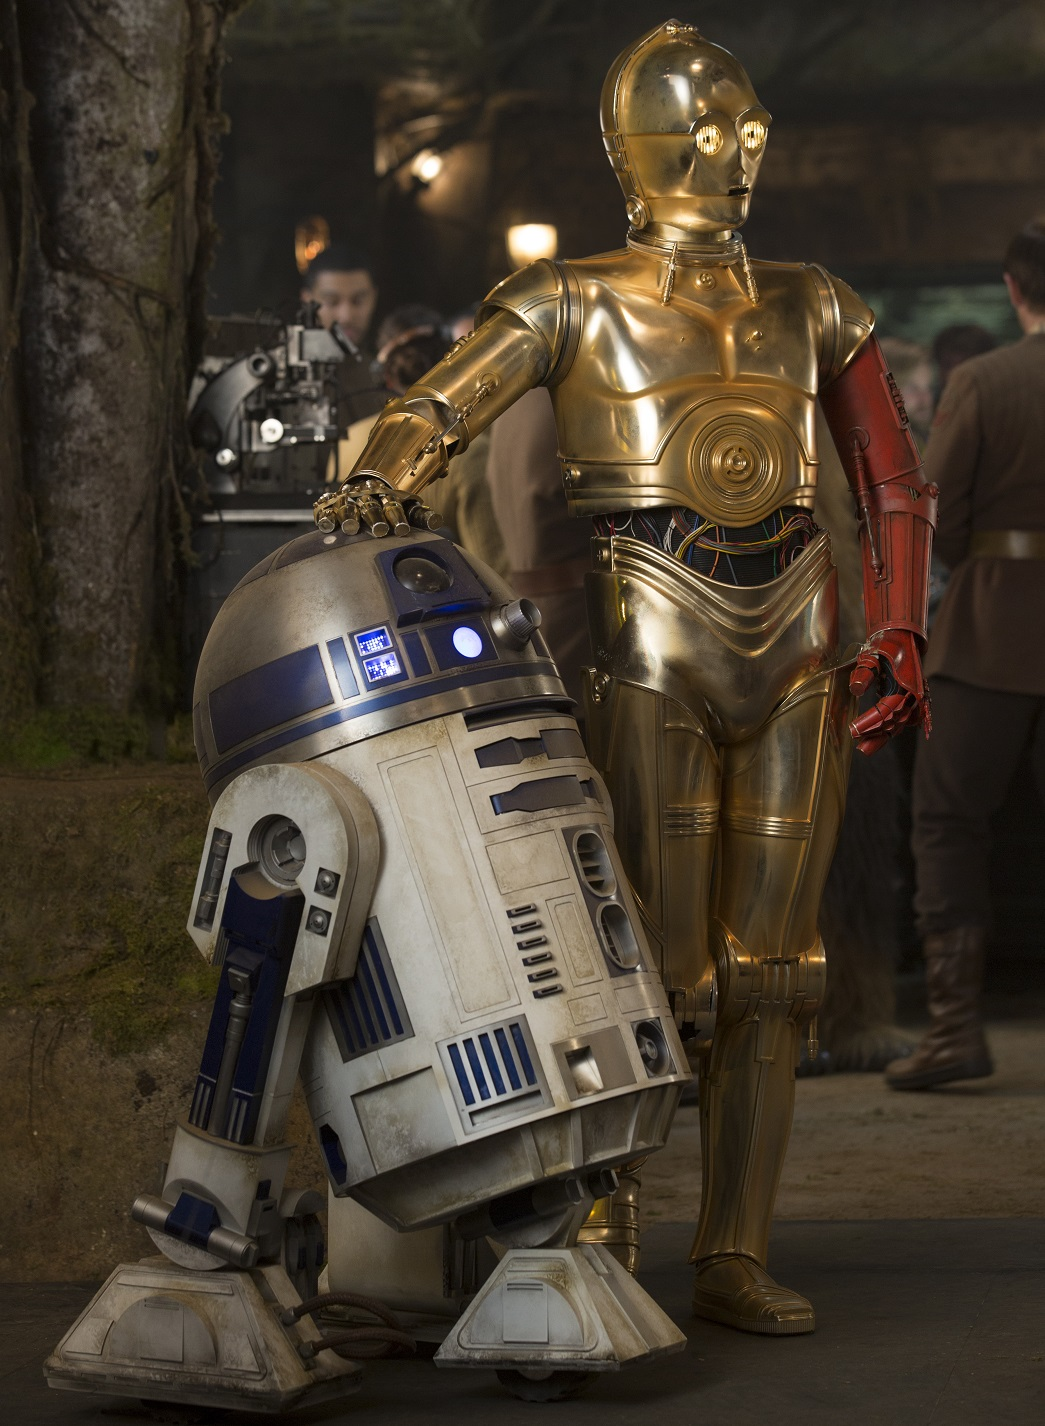 R2-D2 and C-3PO will soon return in Star Wars: The Force Awakens Photo: David James